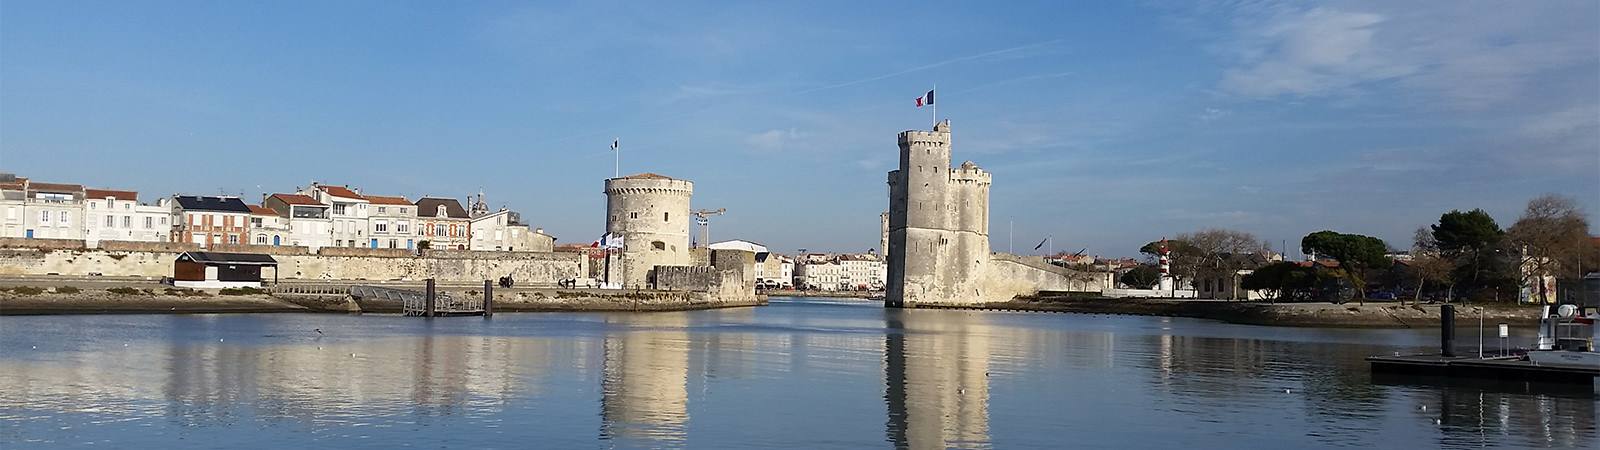 Agence antioche agence immobili re la rochelle for Agence immobiliere 4